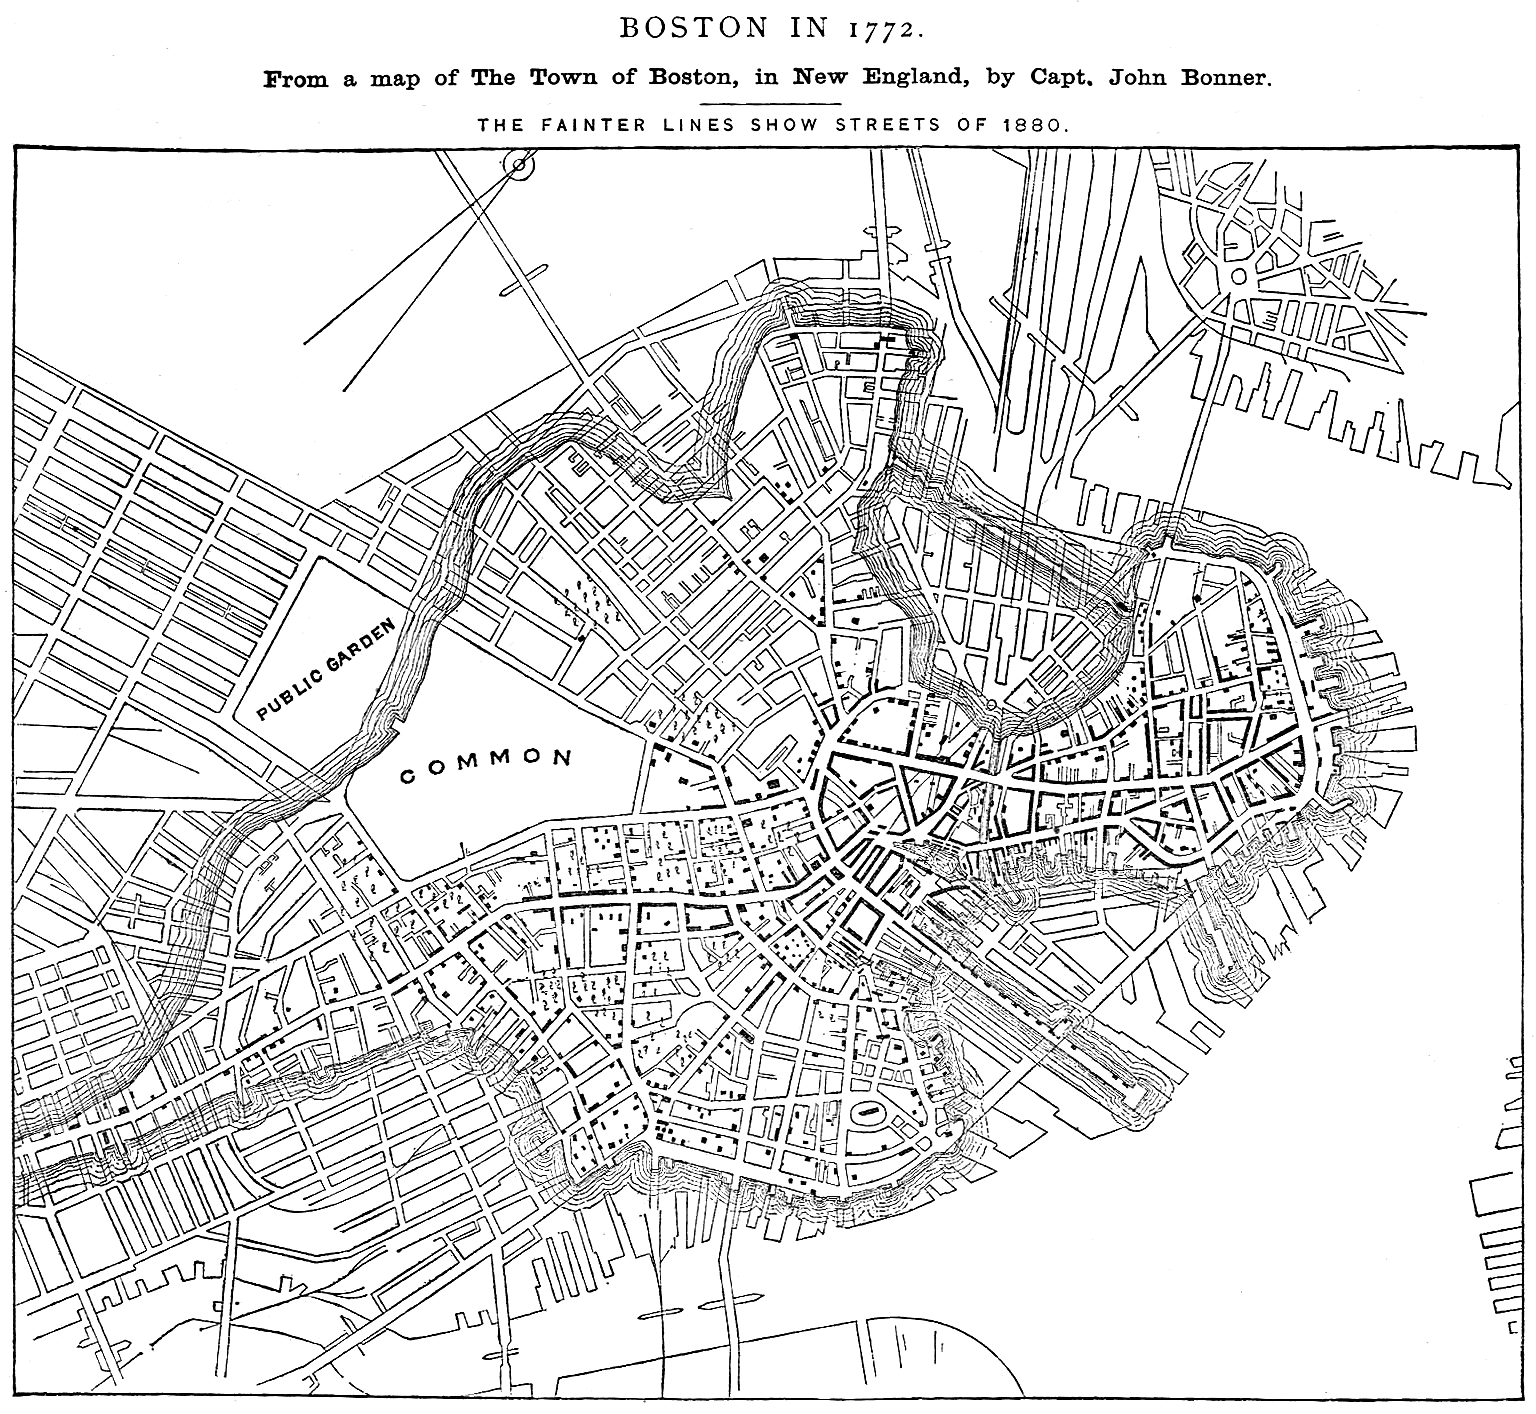 Boston in 1772, compared with Boston in 1880